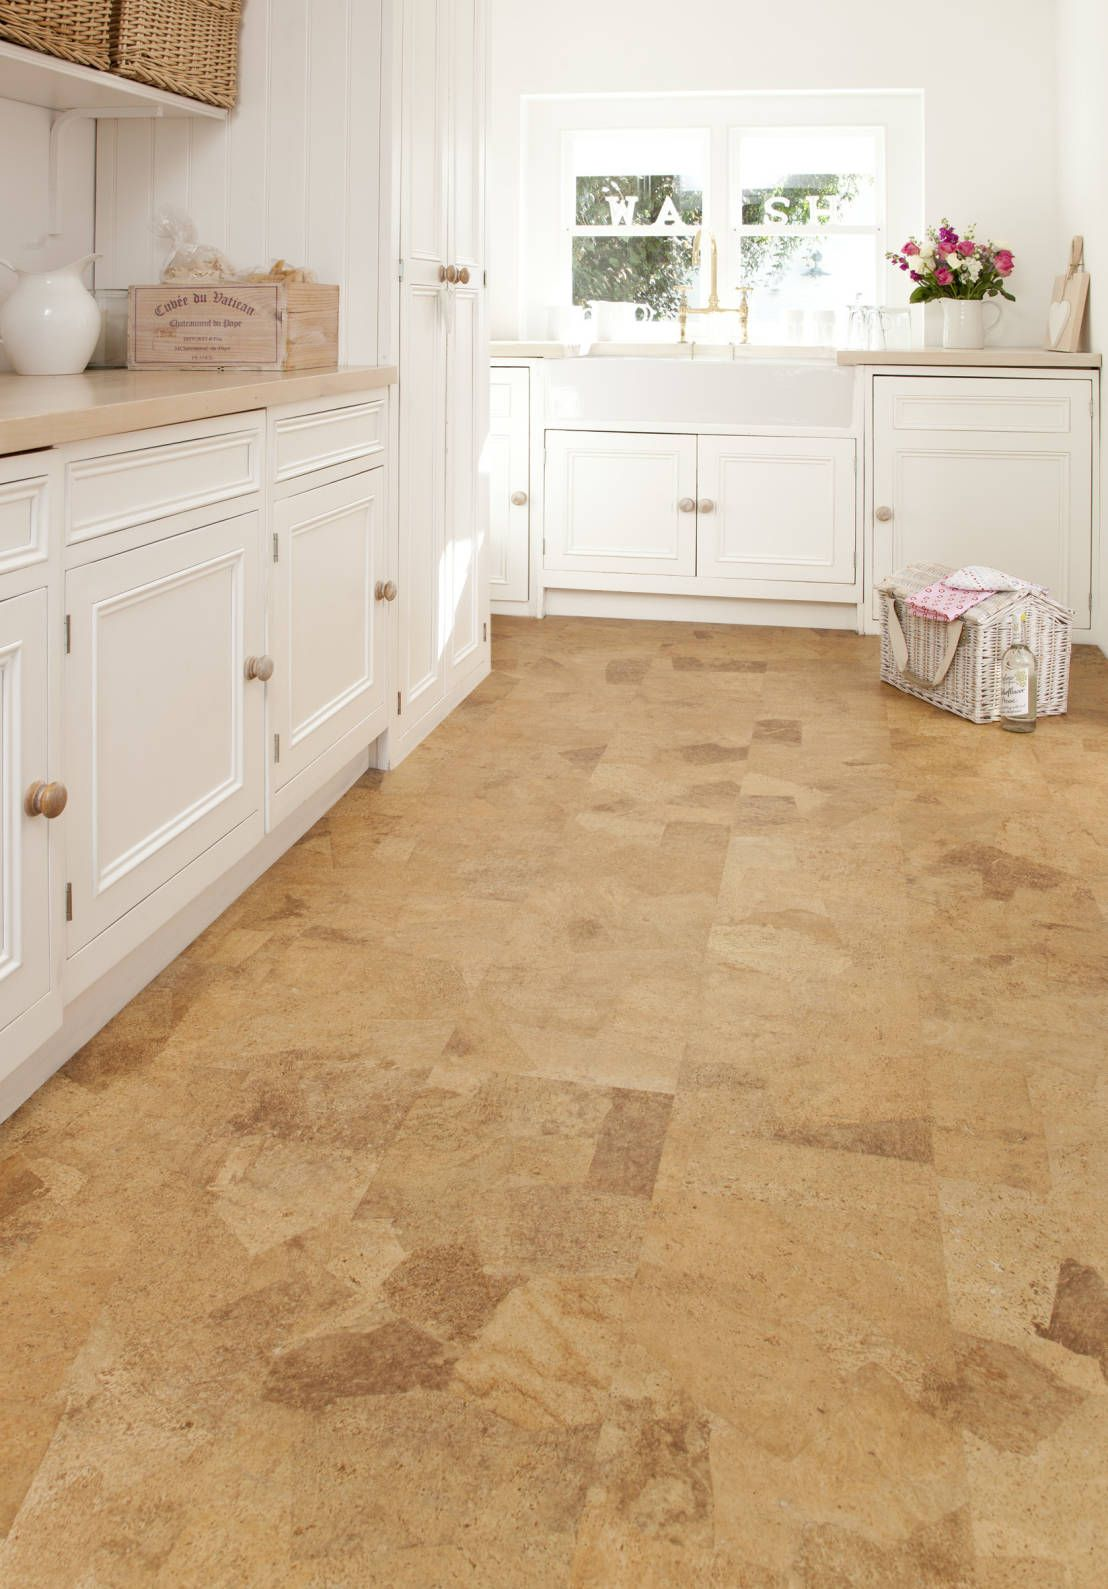 Linoleum Küchenboden Why Osb Is A Hidden Winner For Your Home Ideas For The House